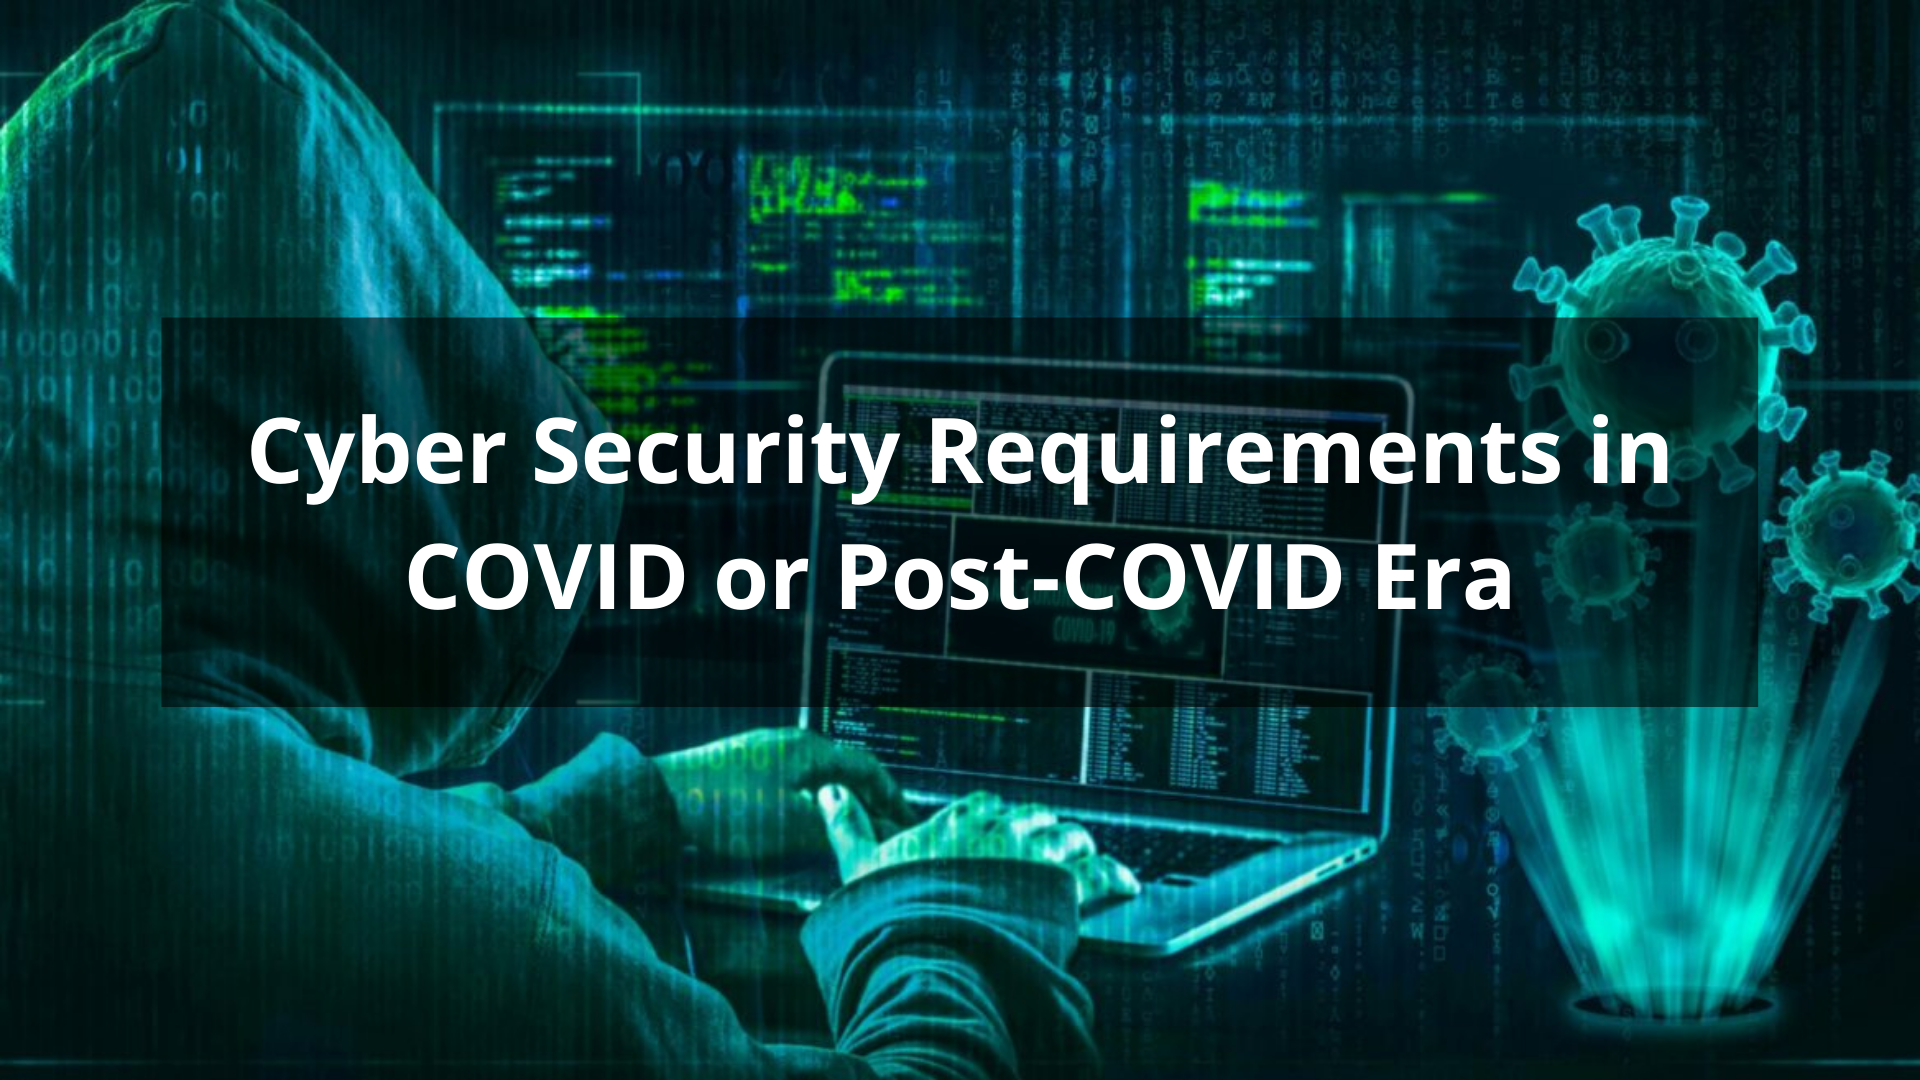 Cyber Security Requirements in COVID or Post-COVID Era